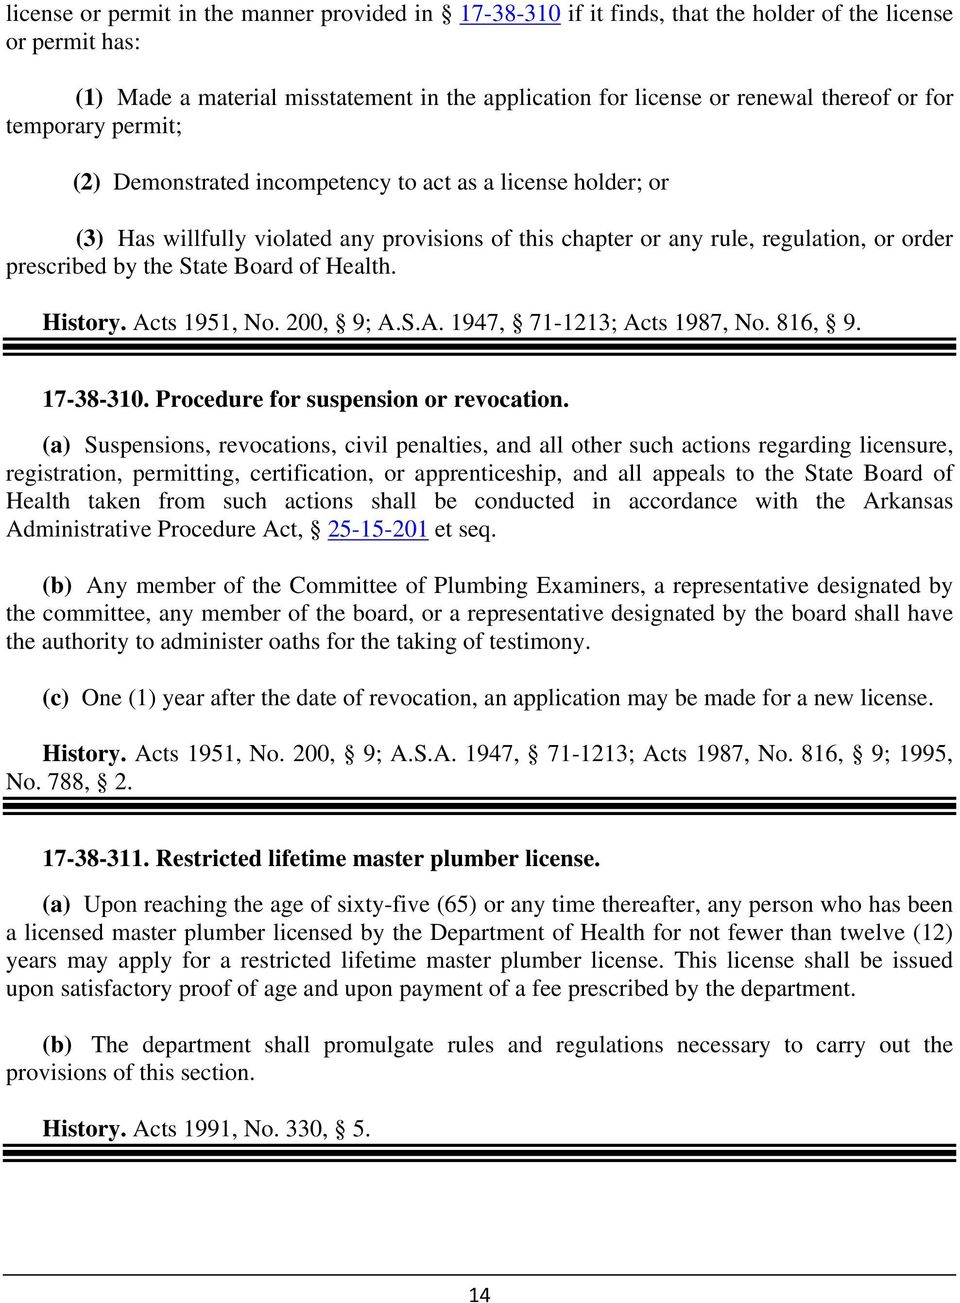 Board of Health. History. Acts 1951, No. 200, 9; A.S.A. 1947, 71-1213; Acts 1987, No. 816, 9. 17-38-310. Procedure for suspension or revocation.